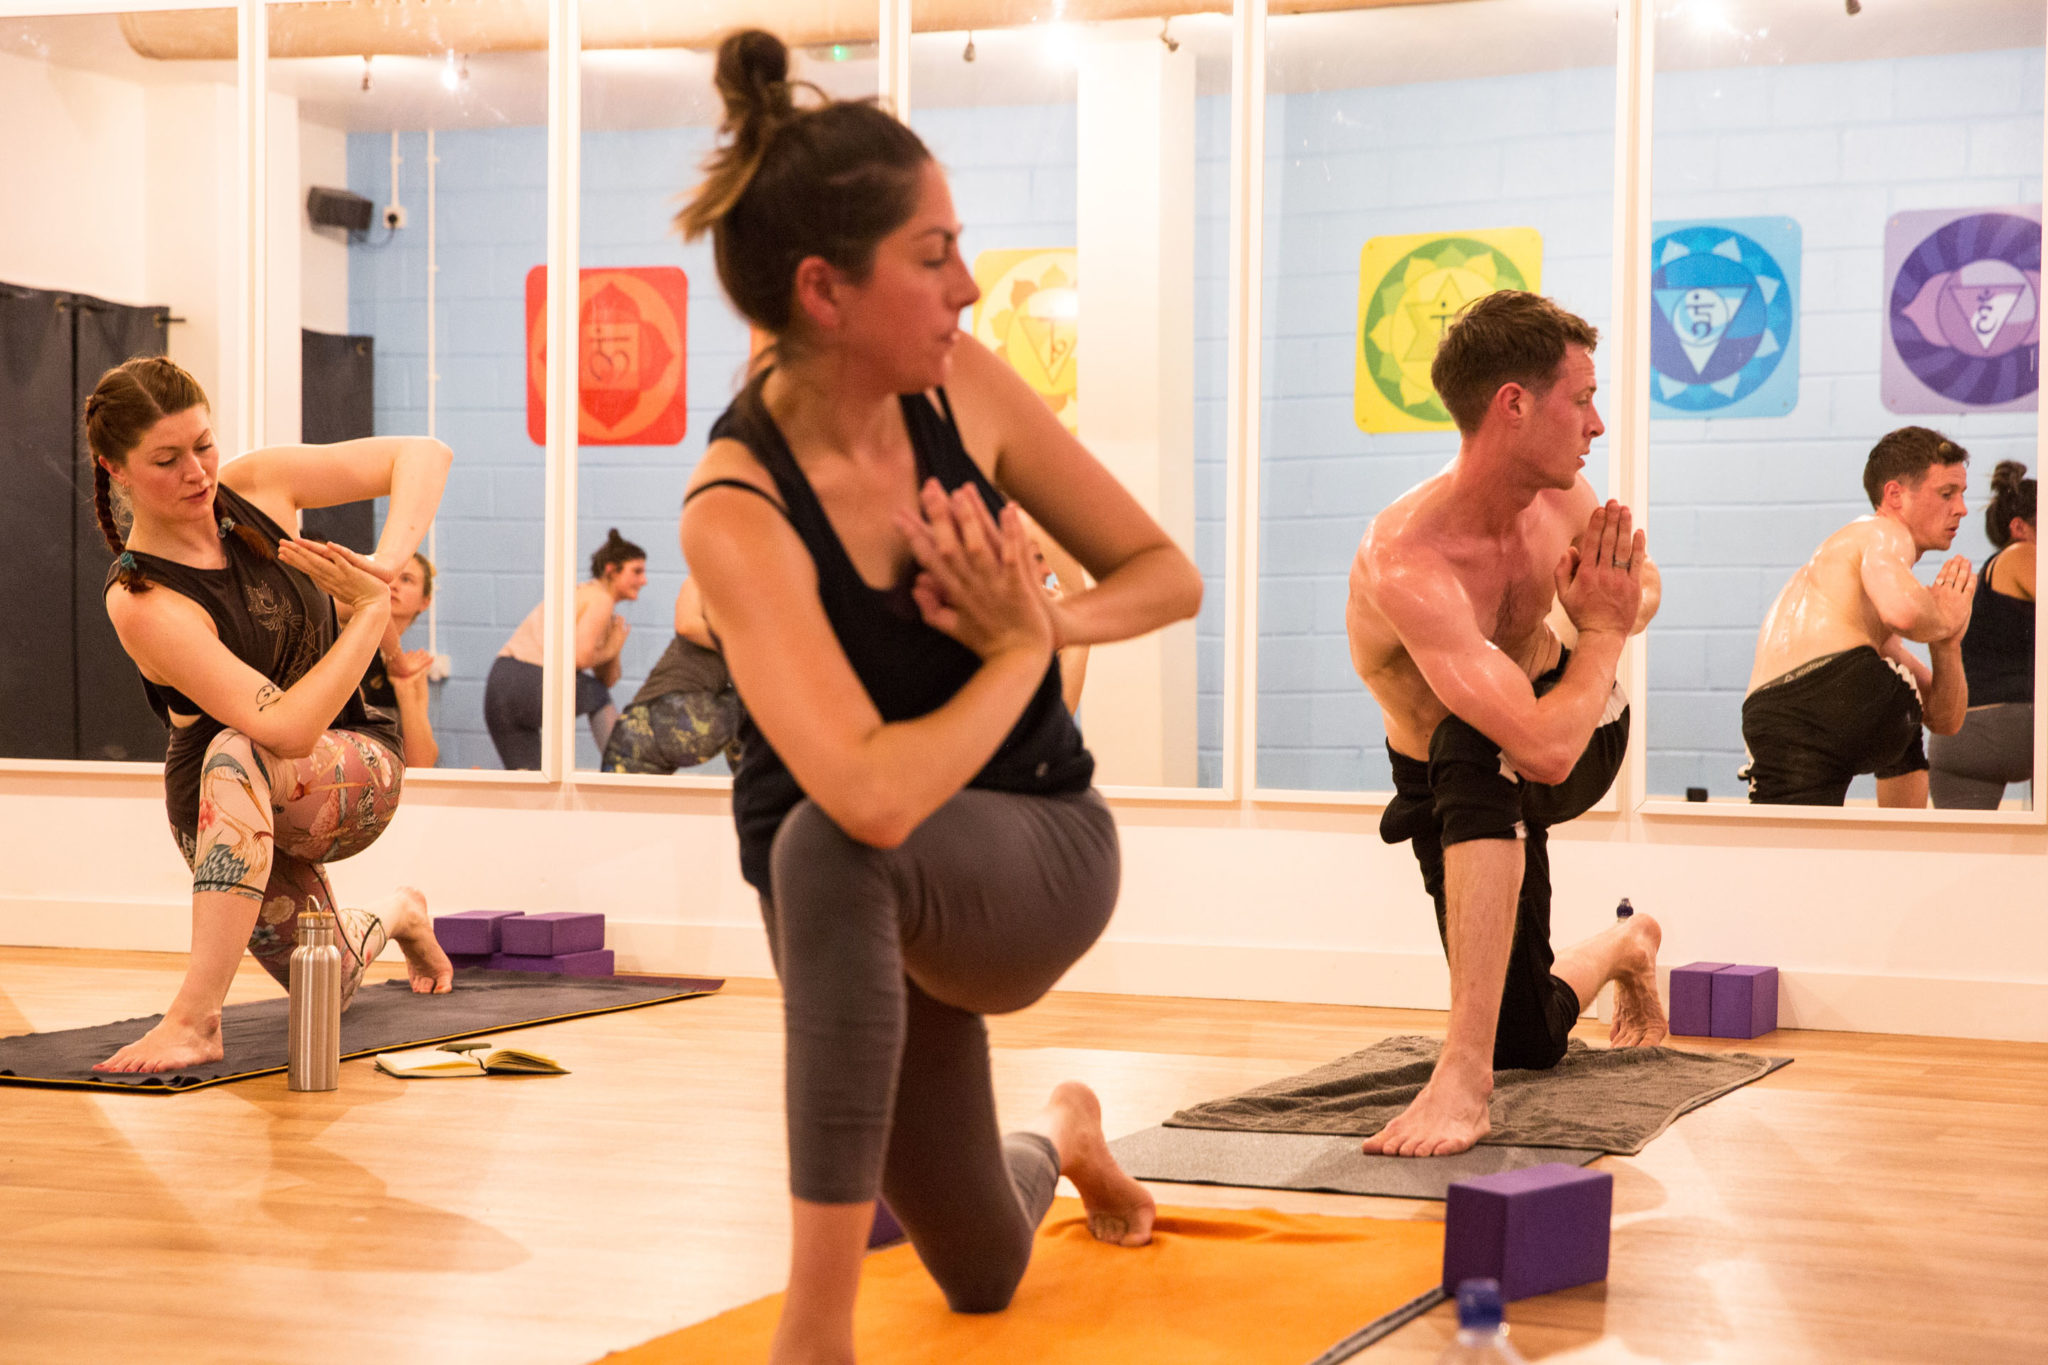 Yoga, Twisting Postures and Ownership